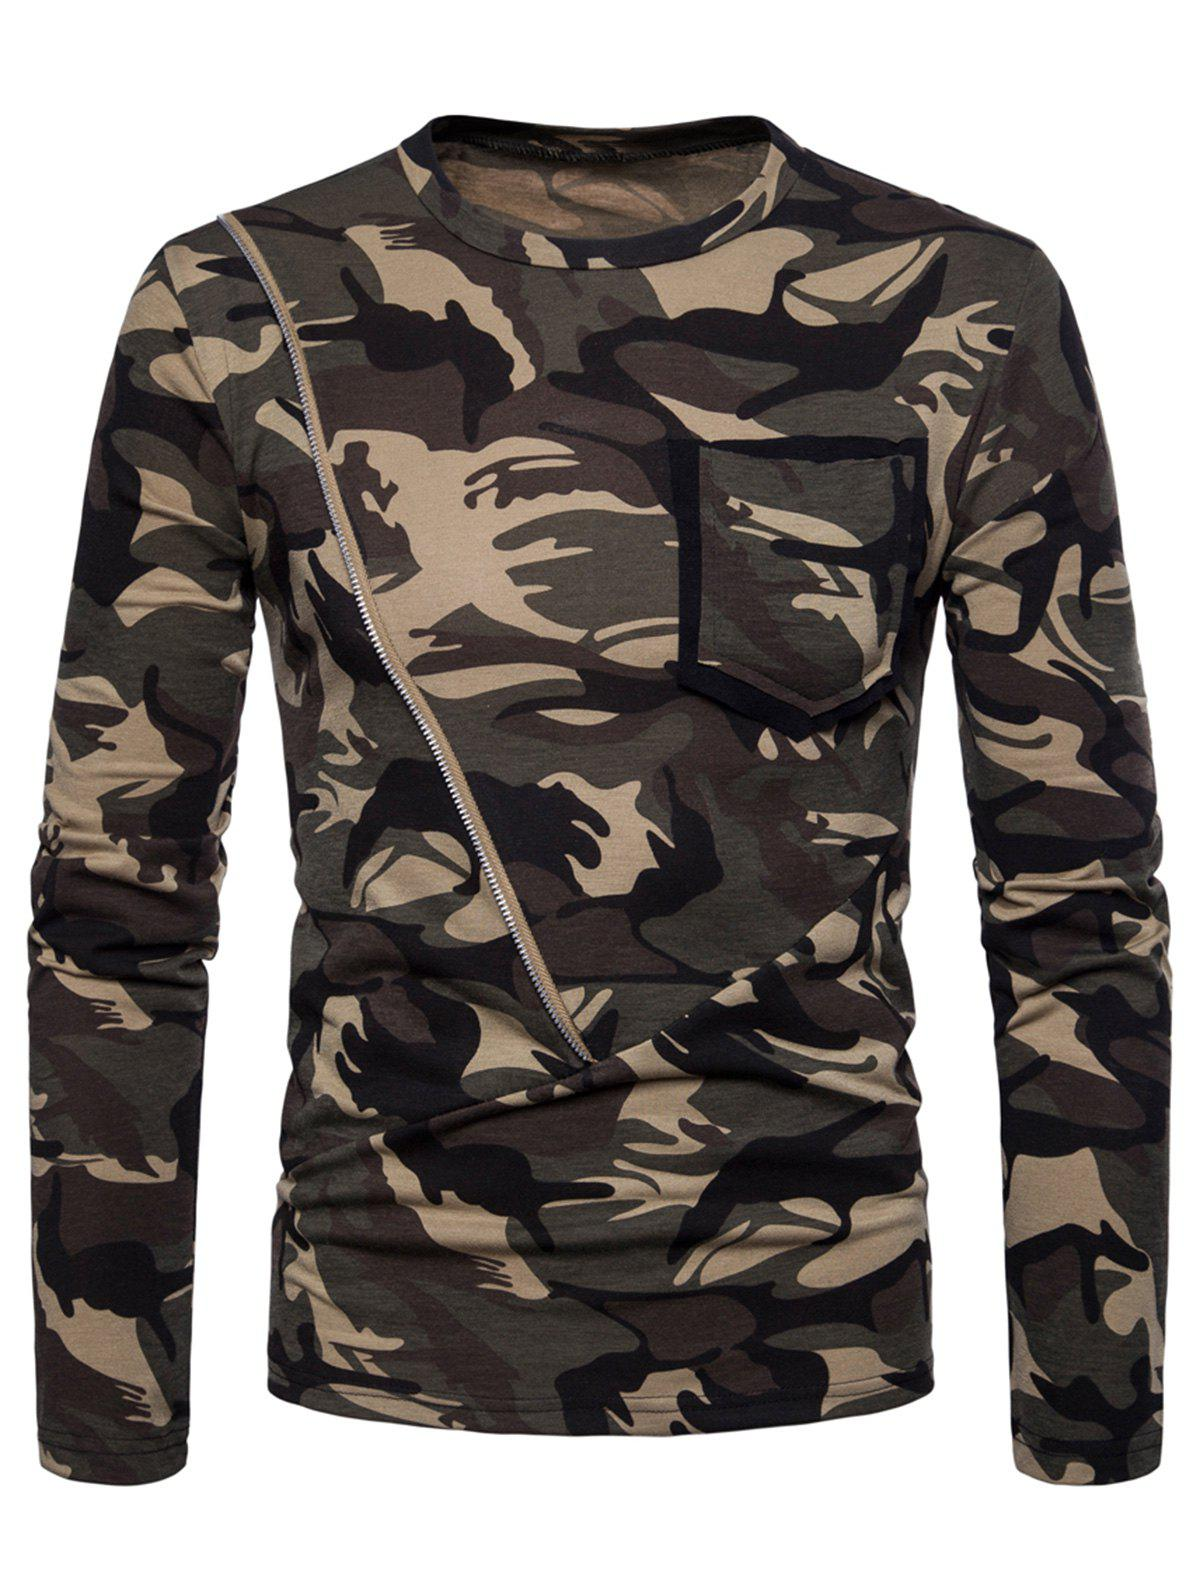 Zipper Pocket Design Camo Print Crew Neck T-shirt - ARMY GREEN 2XL